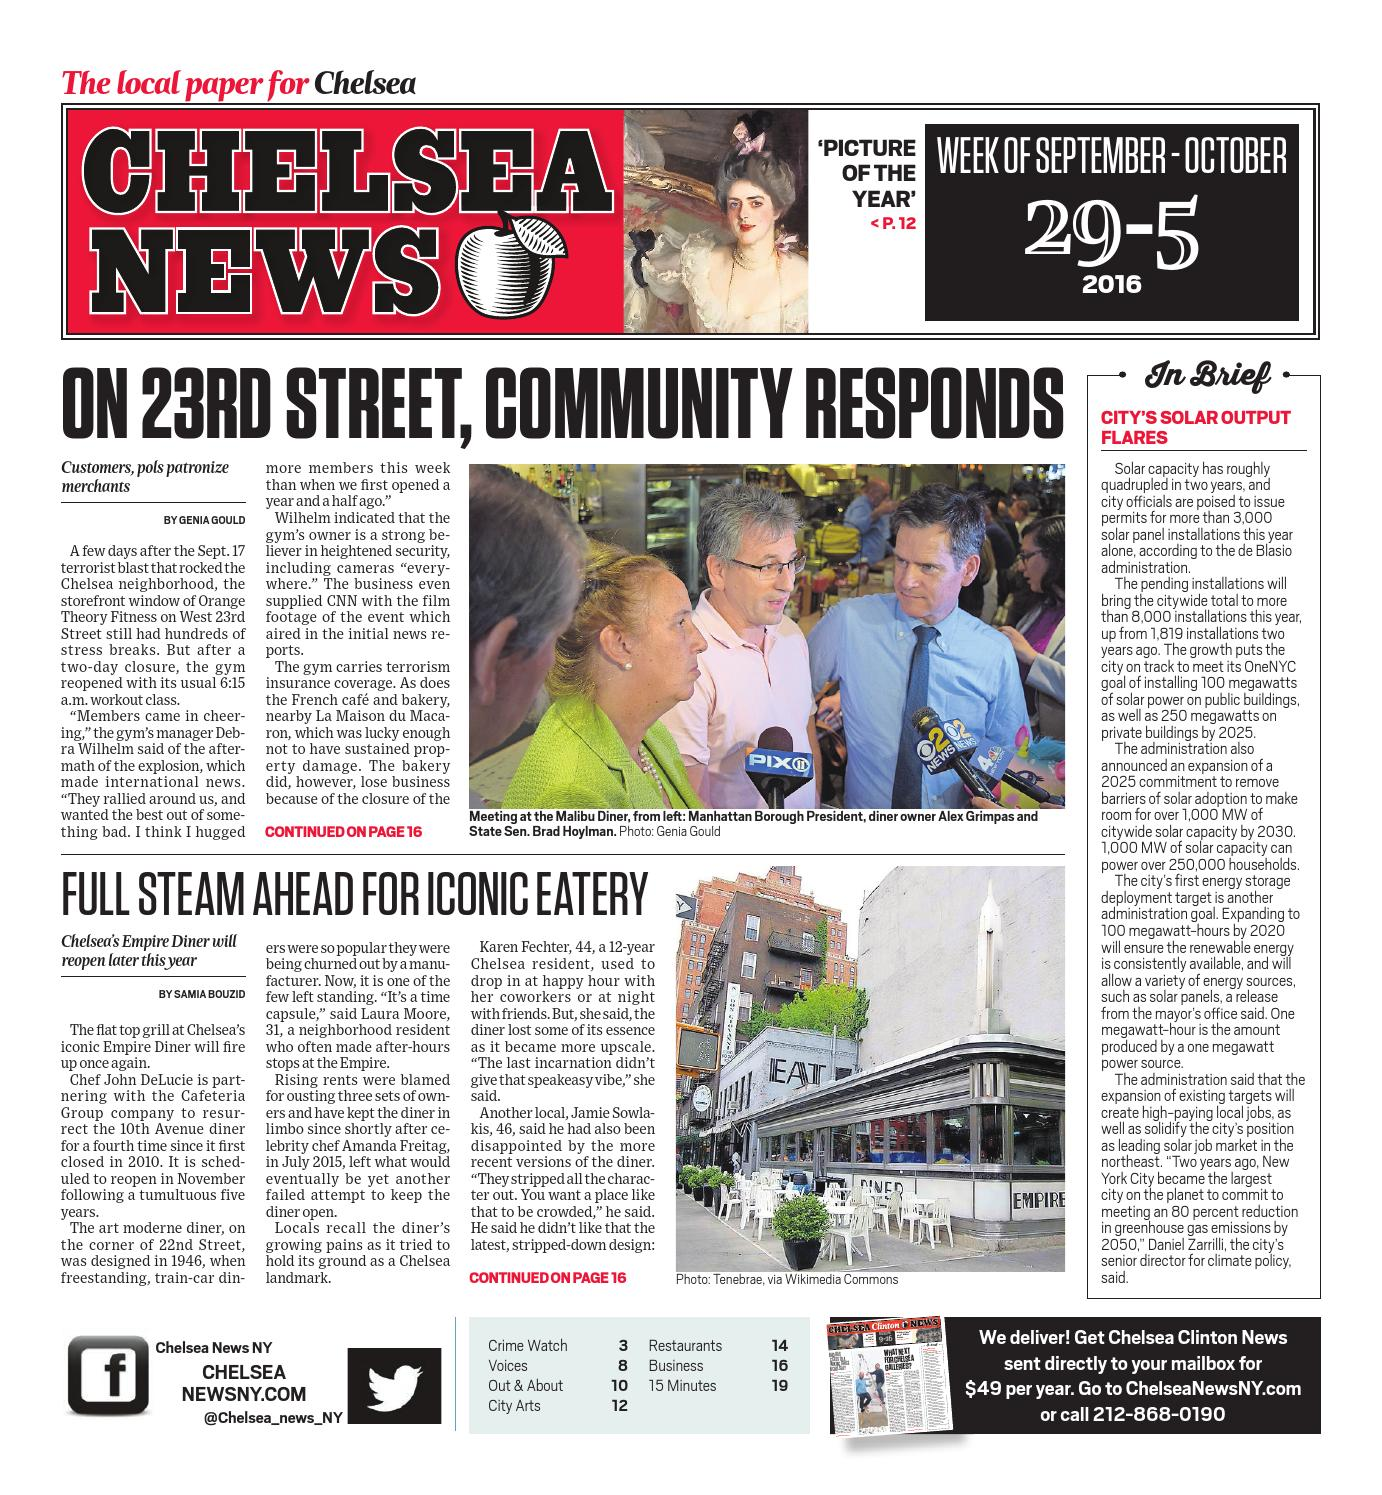 Chelsea News September 29 2016 By Chelsea News Ny Issuu